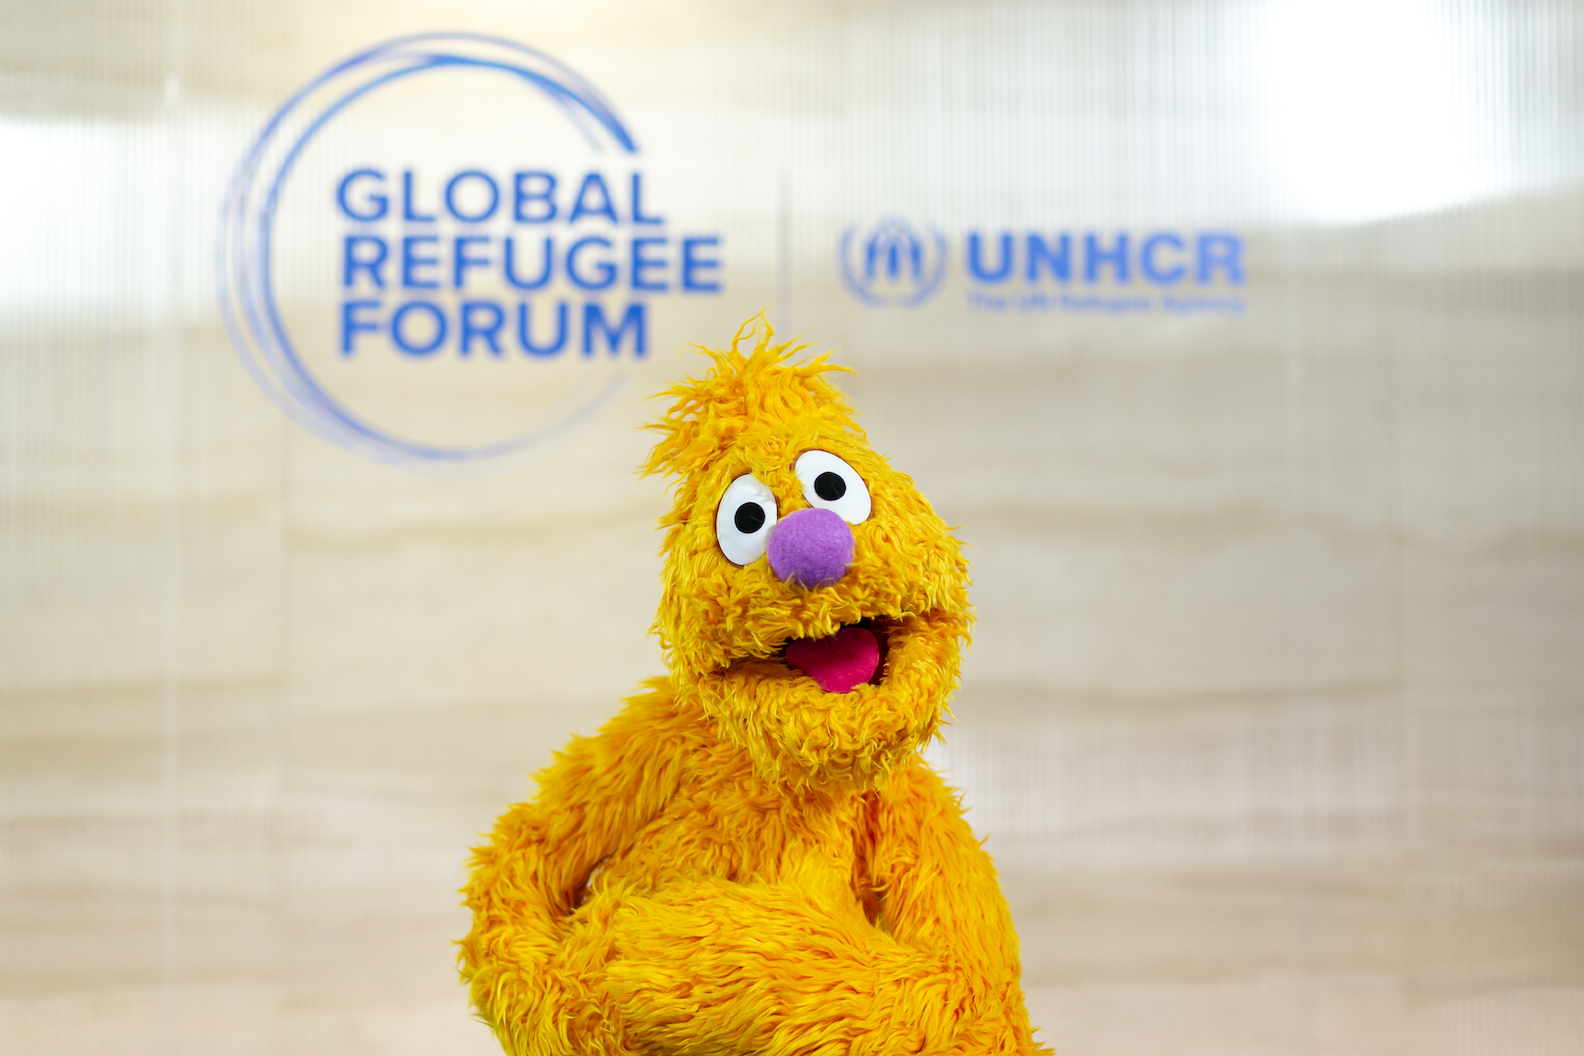 Sesame Street Muppets meet guests at Global Refugee Forum